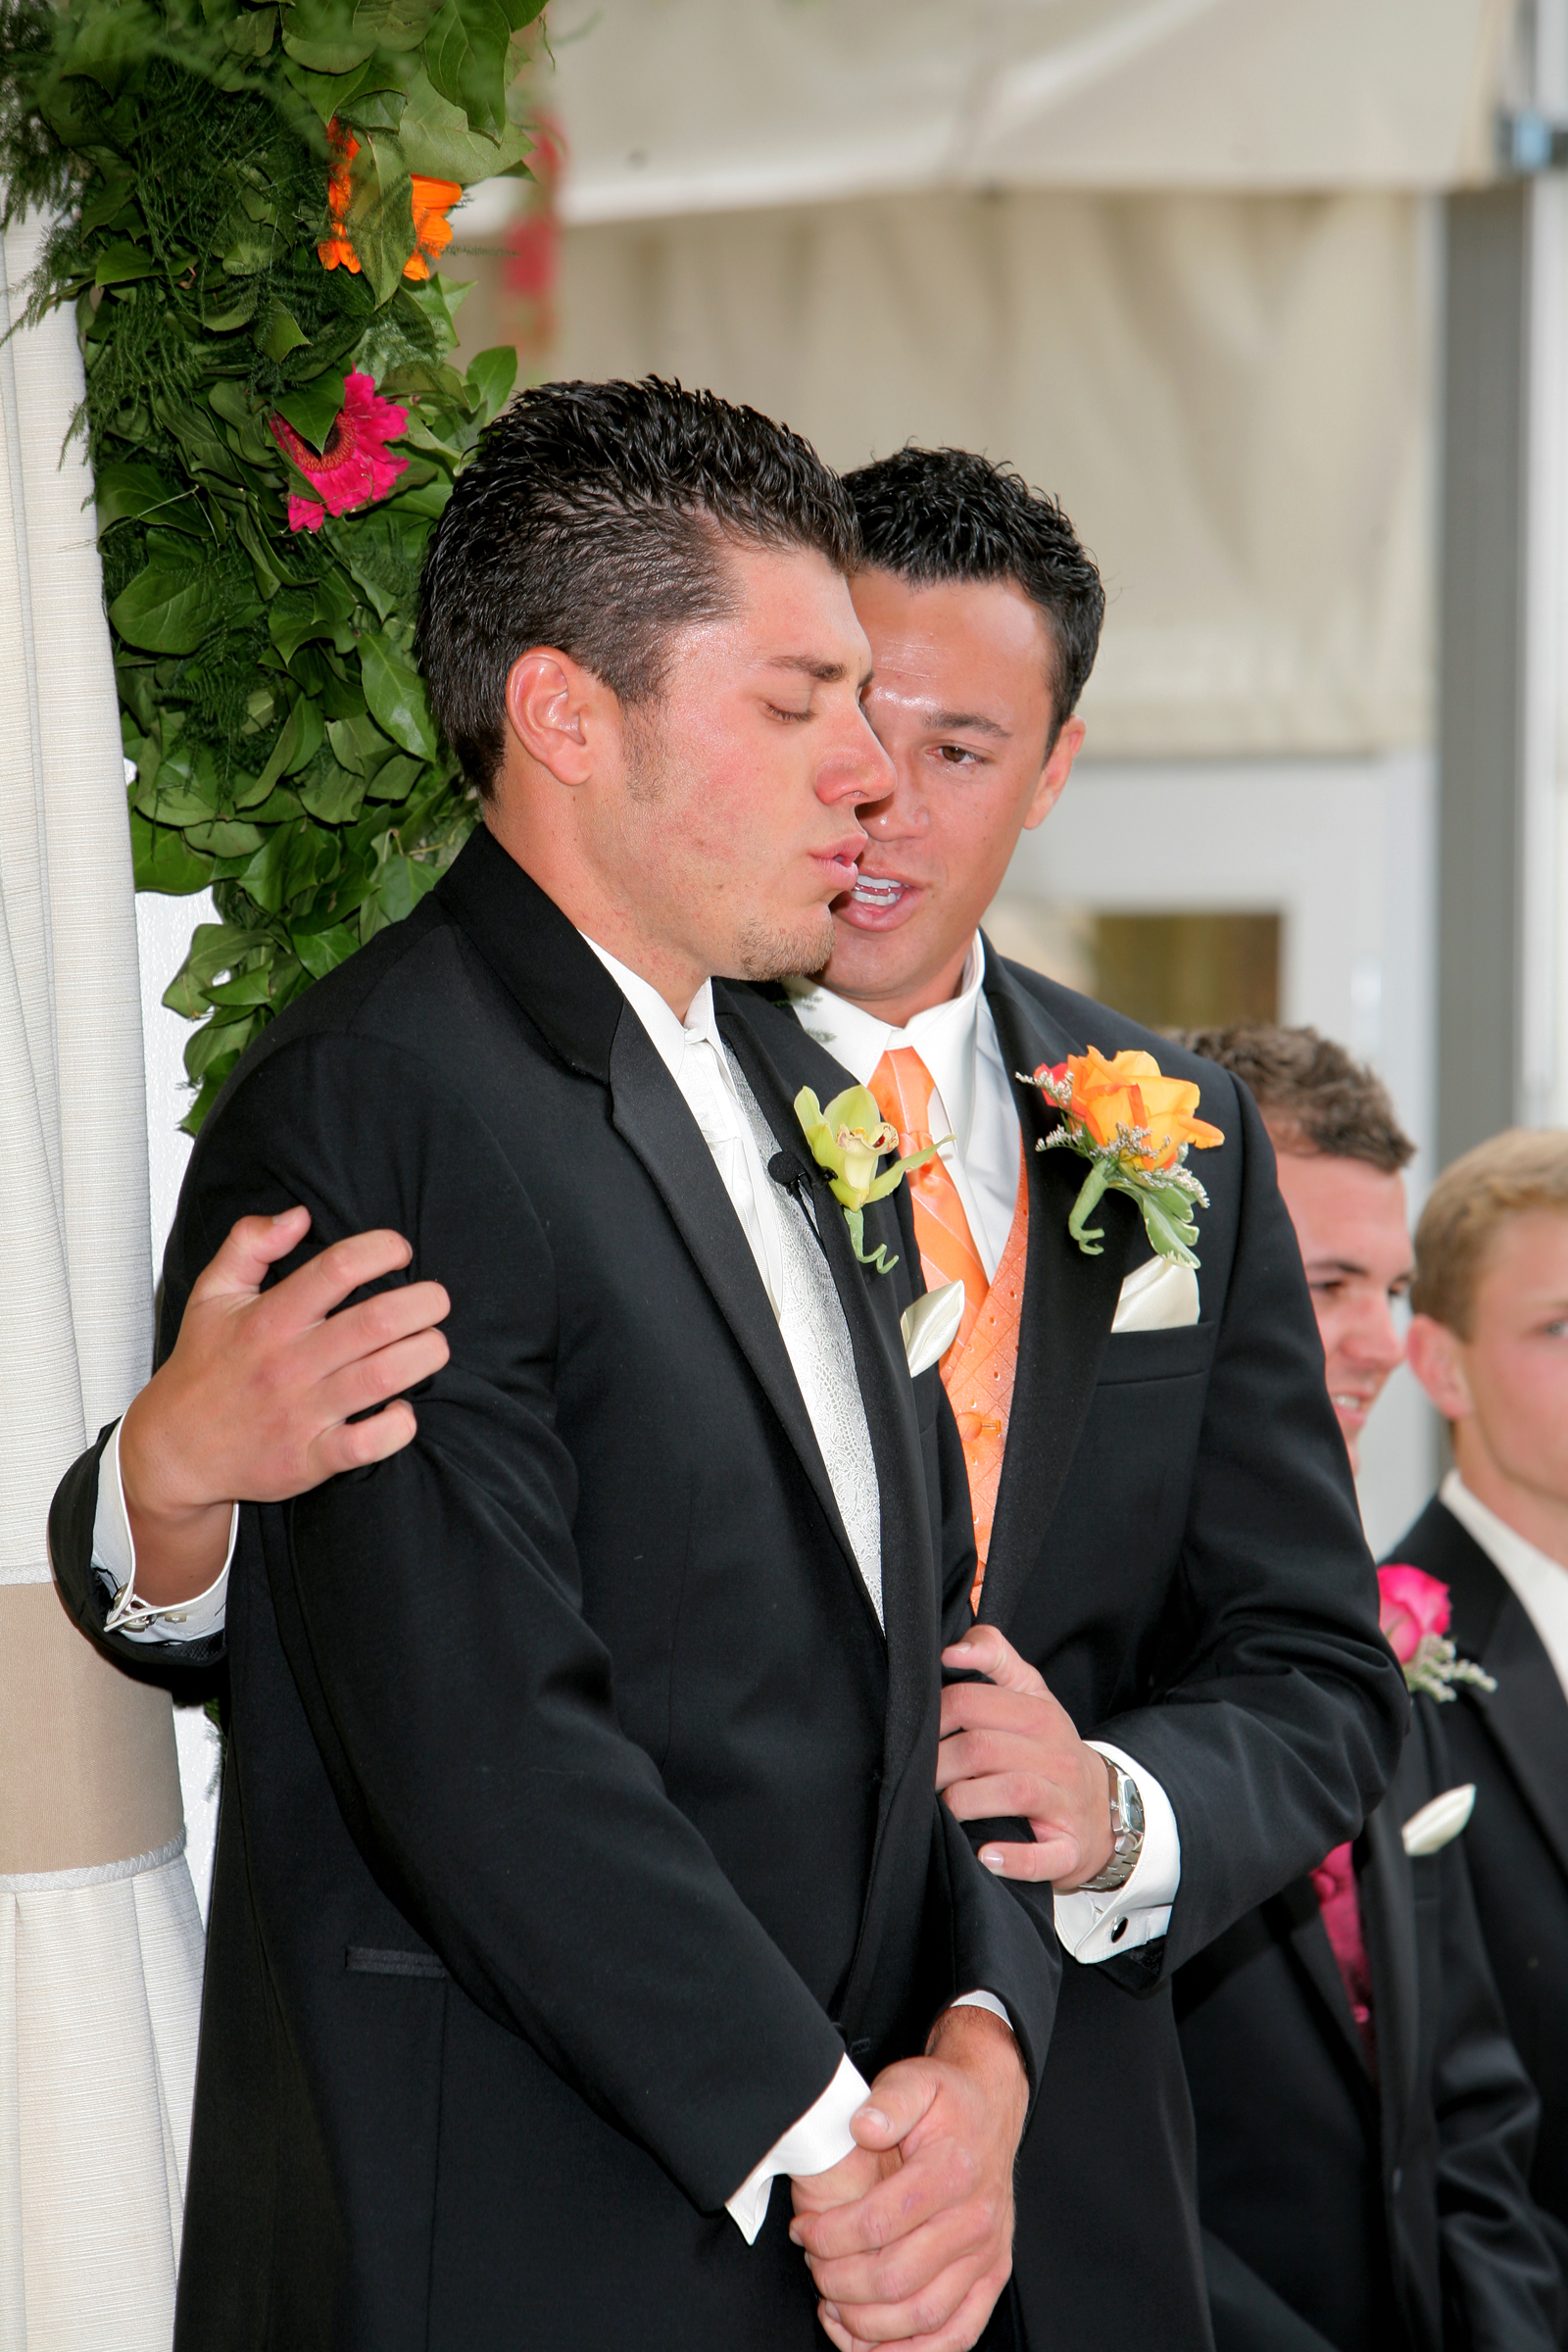 ShadowcatcherGalleryOne_SanDiegoWeddingPhotogrpaher_048.JPG